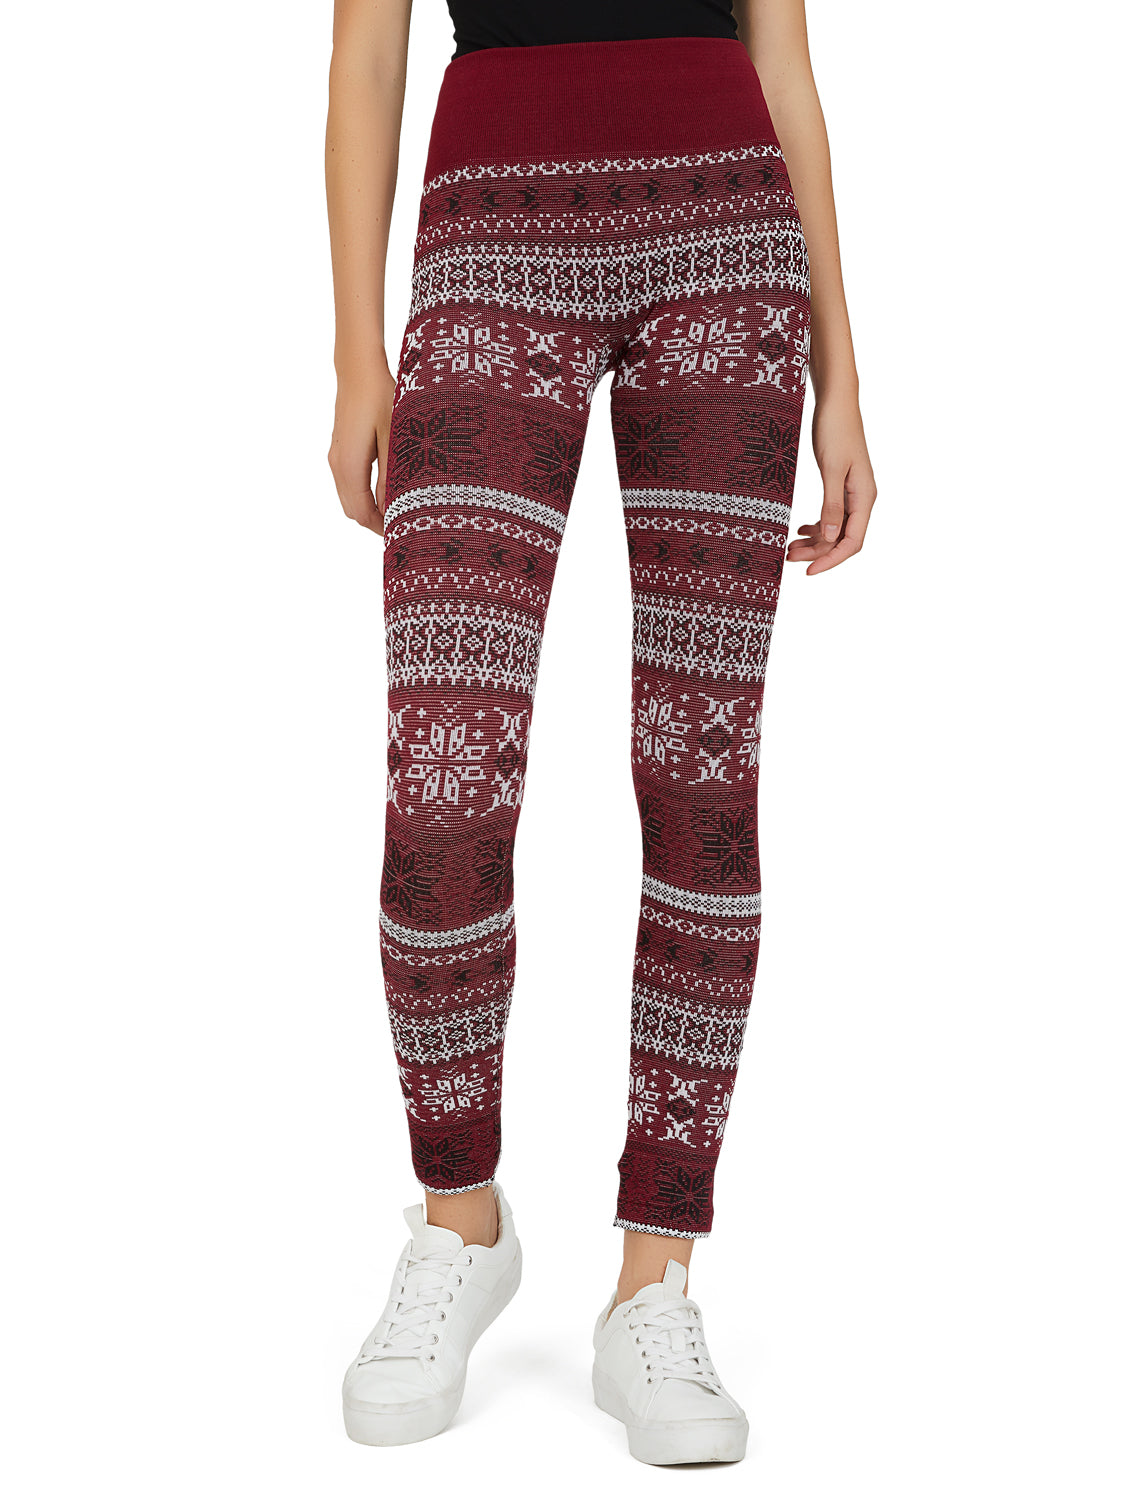 Fair Isle Jacquard Knit Fleece Lined Leggings